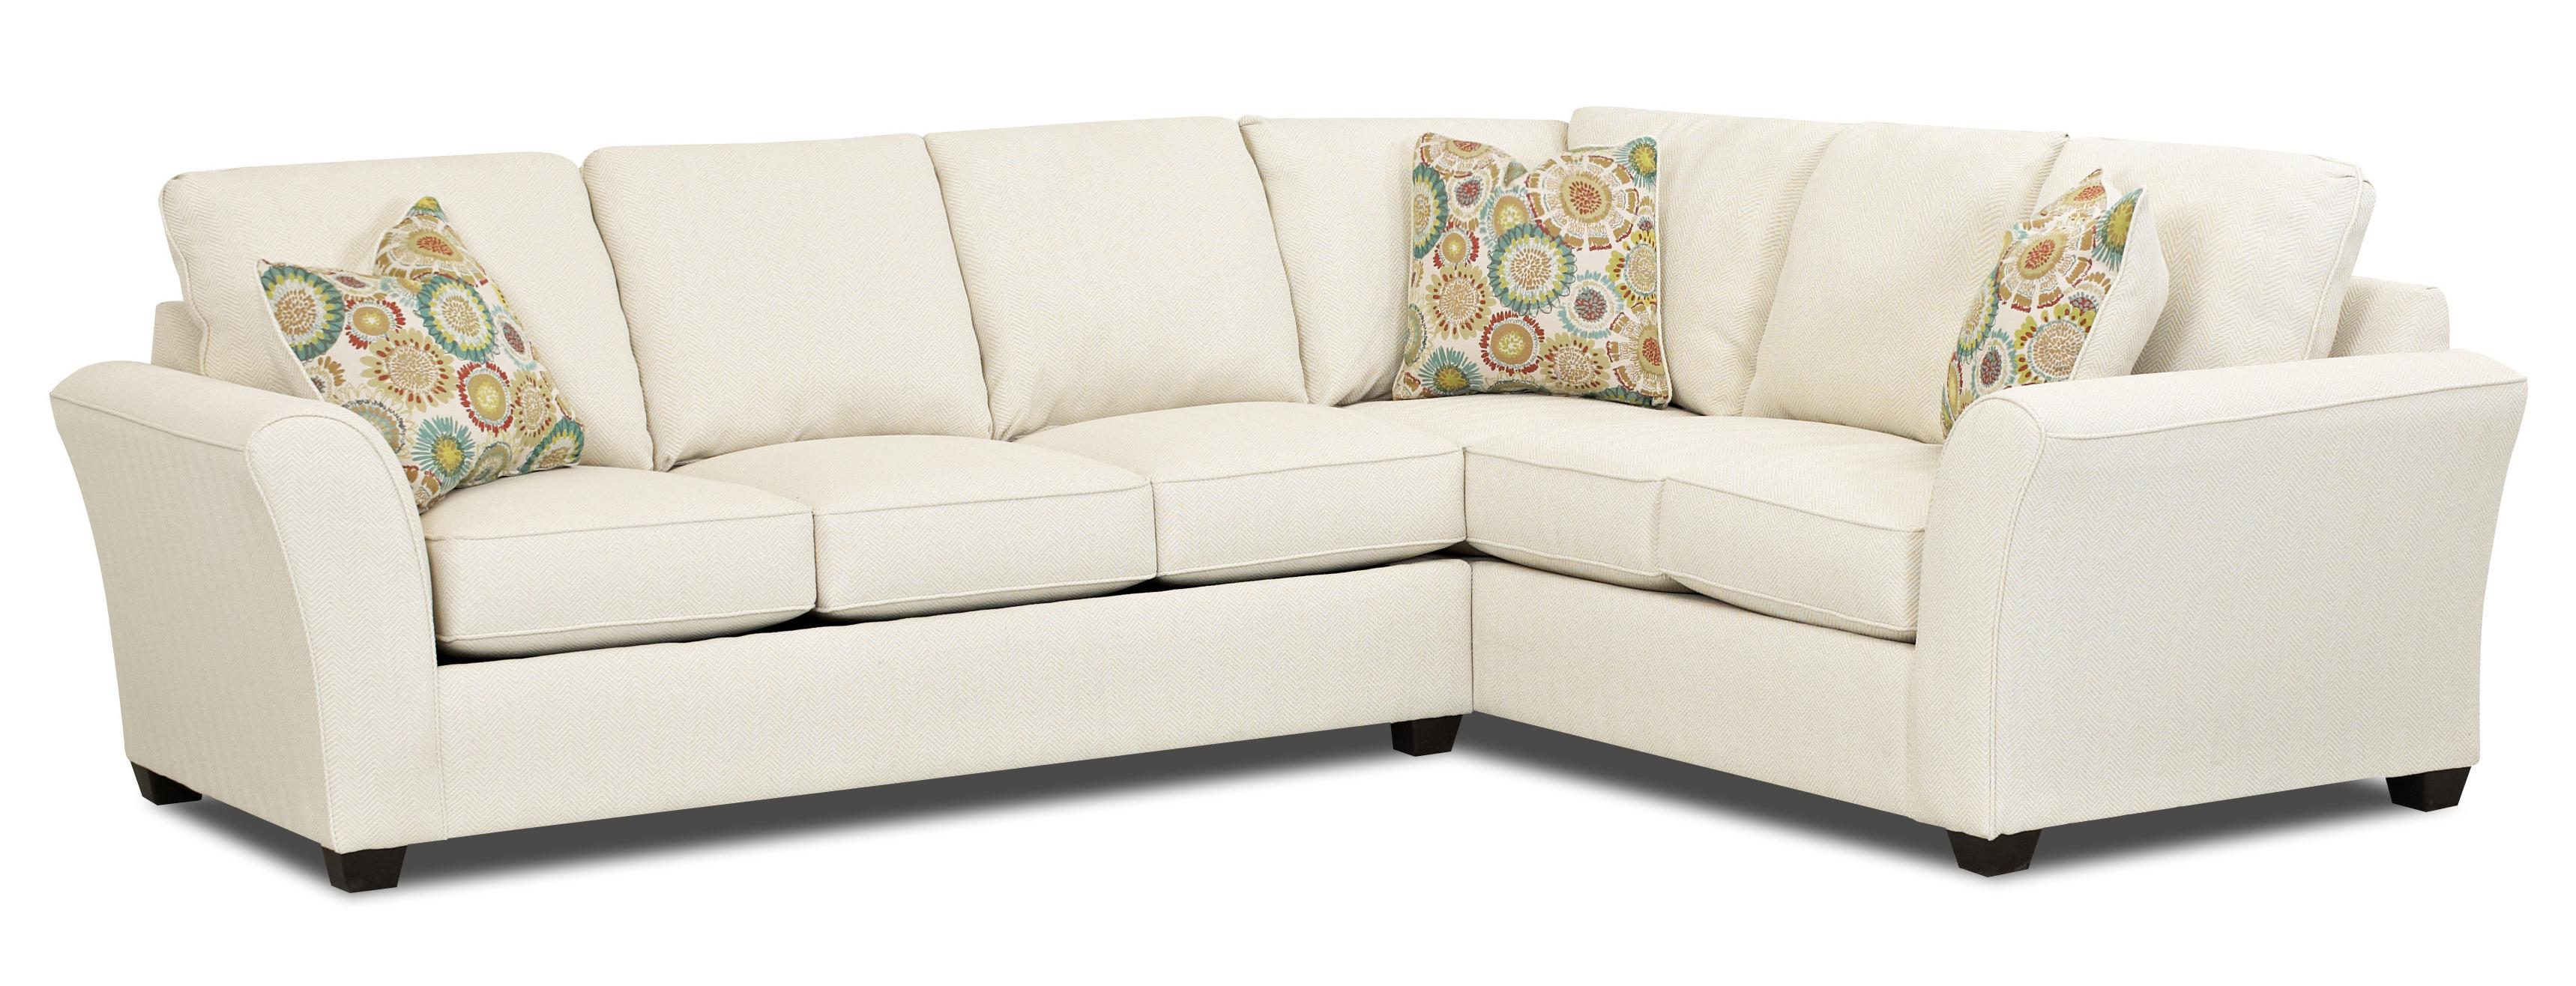 of loveseat sale sleeper sectional sleepers patio unique lovely sofa furniture